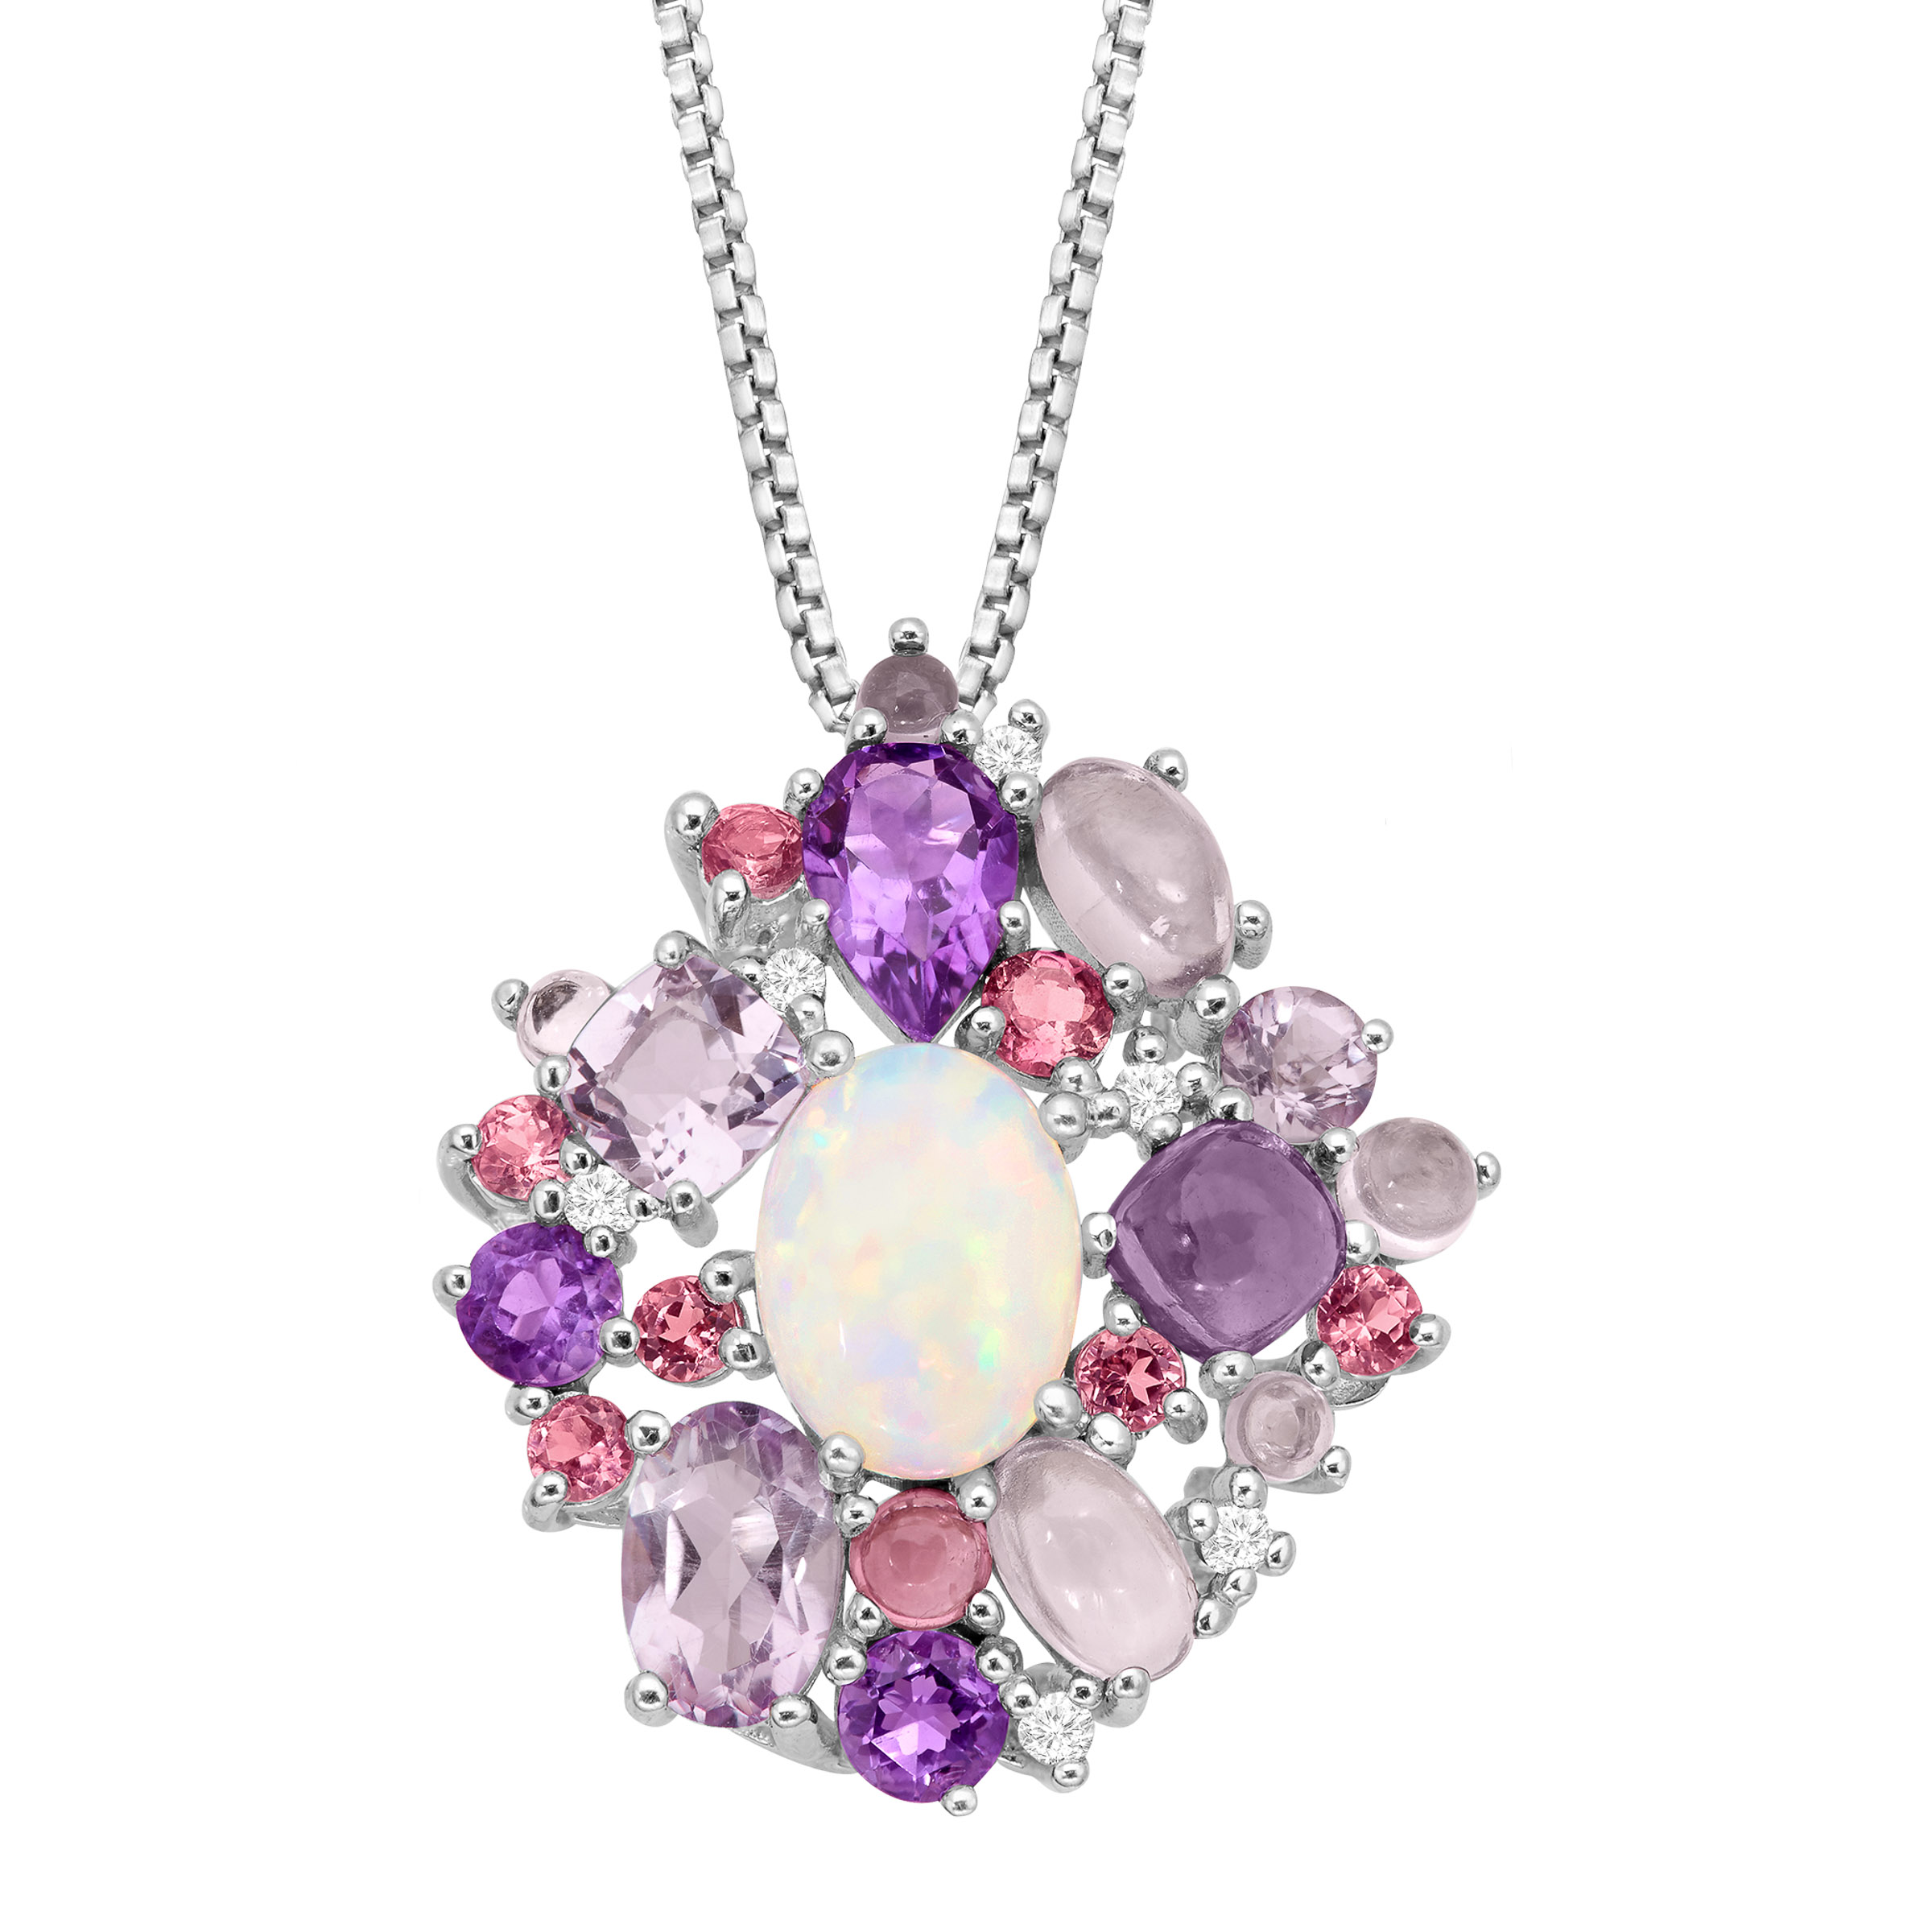 3 1 2 ct Natural Opal, Amethyst & Tourmaline Pendant Necklace with Diamonds in Sterling Silver by Richline Group